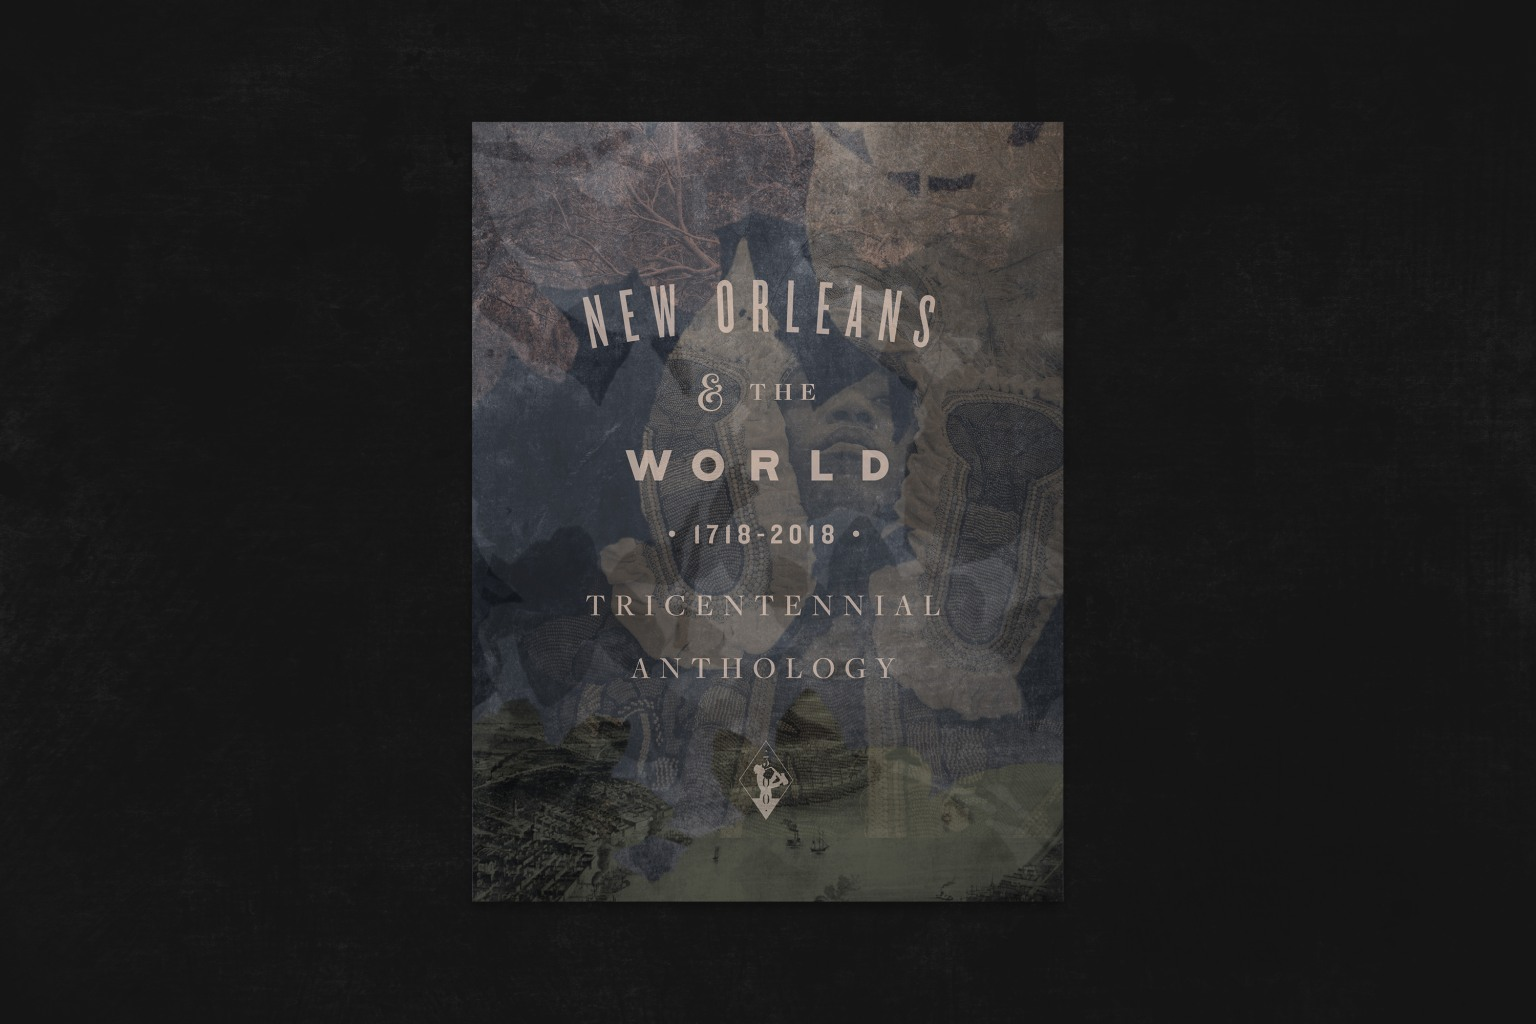 New Orleans & the World